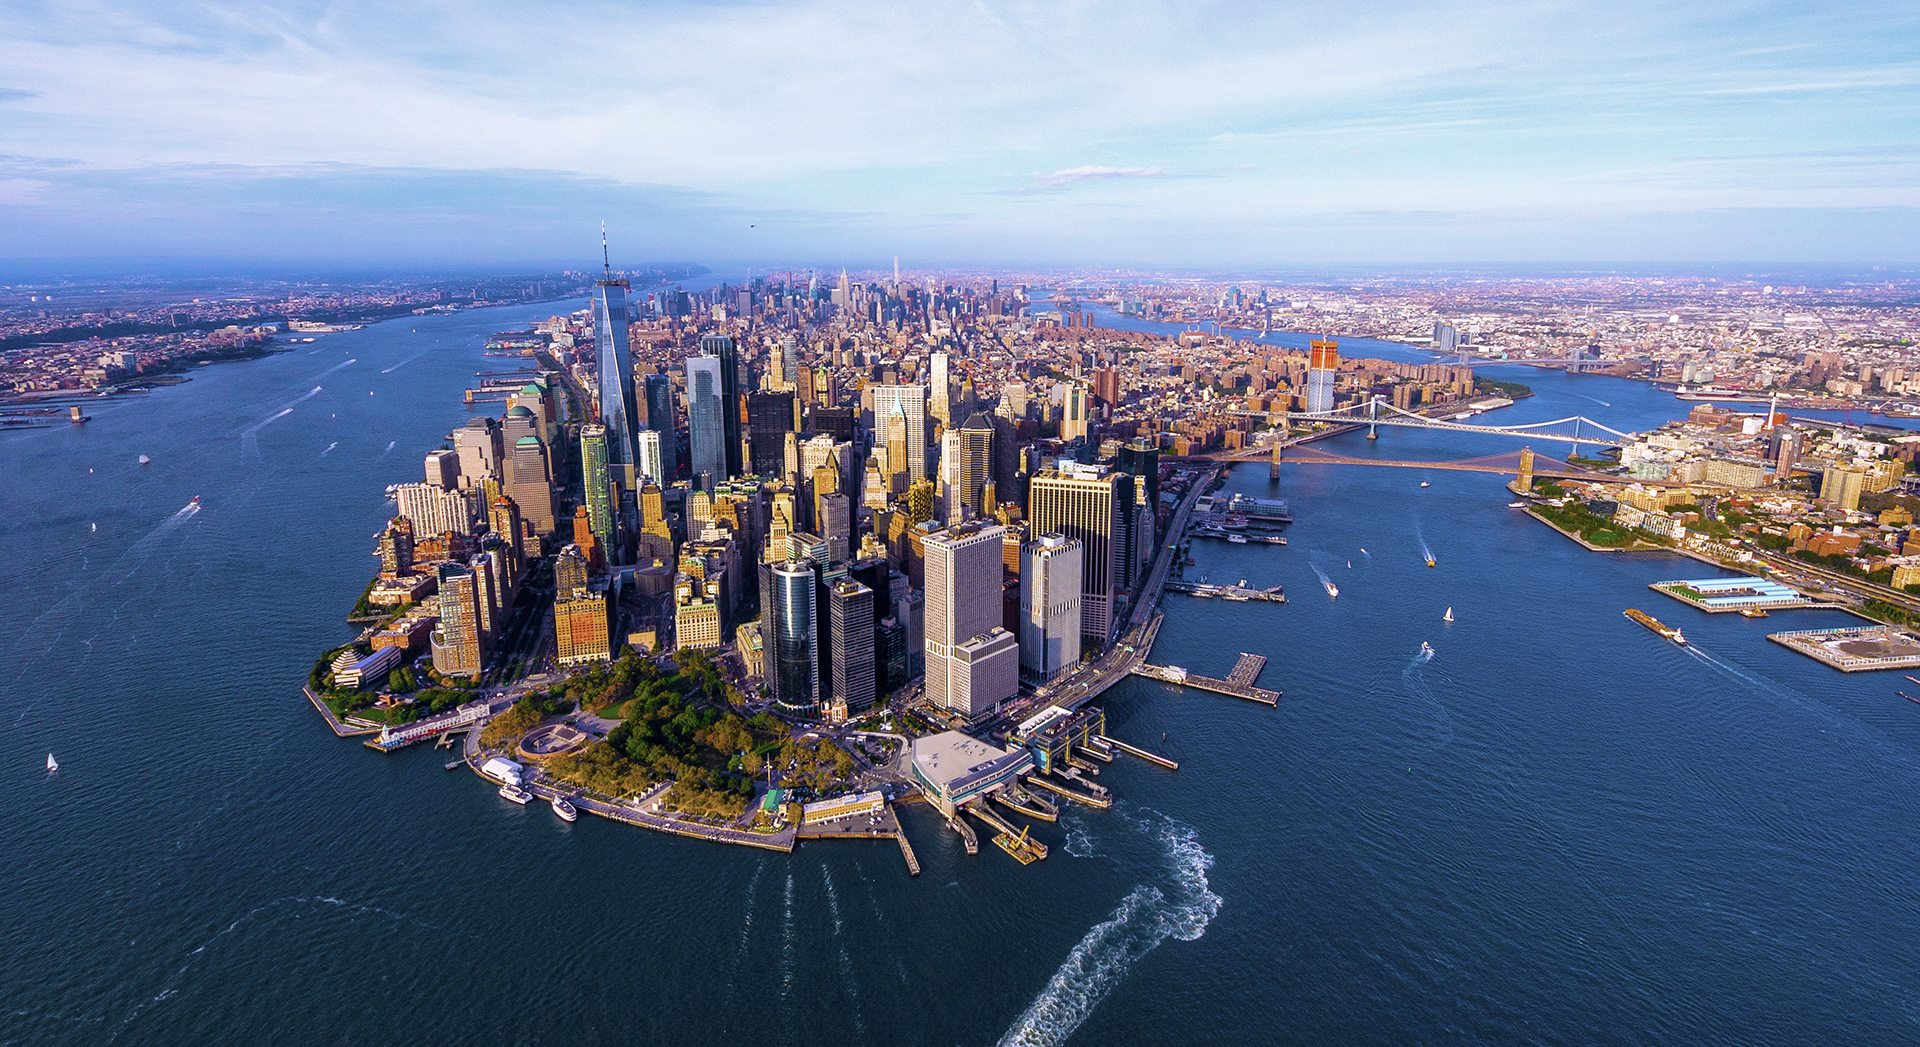 Overhead view of Manhattan and part of Brooklyn